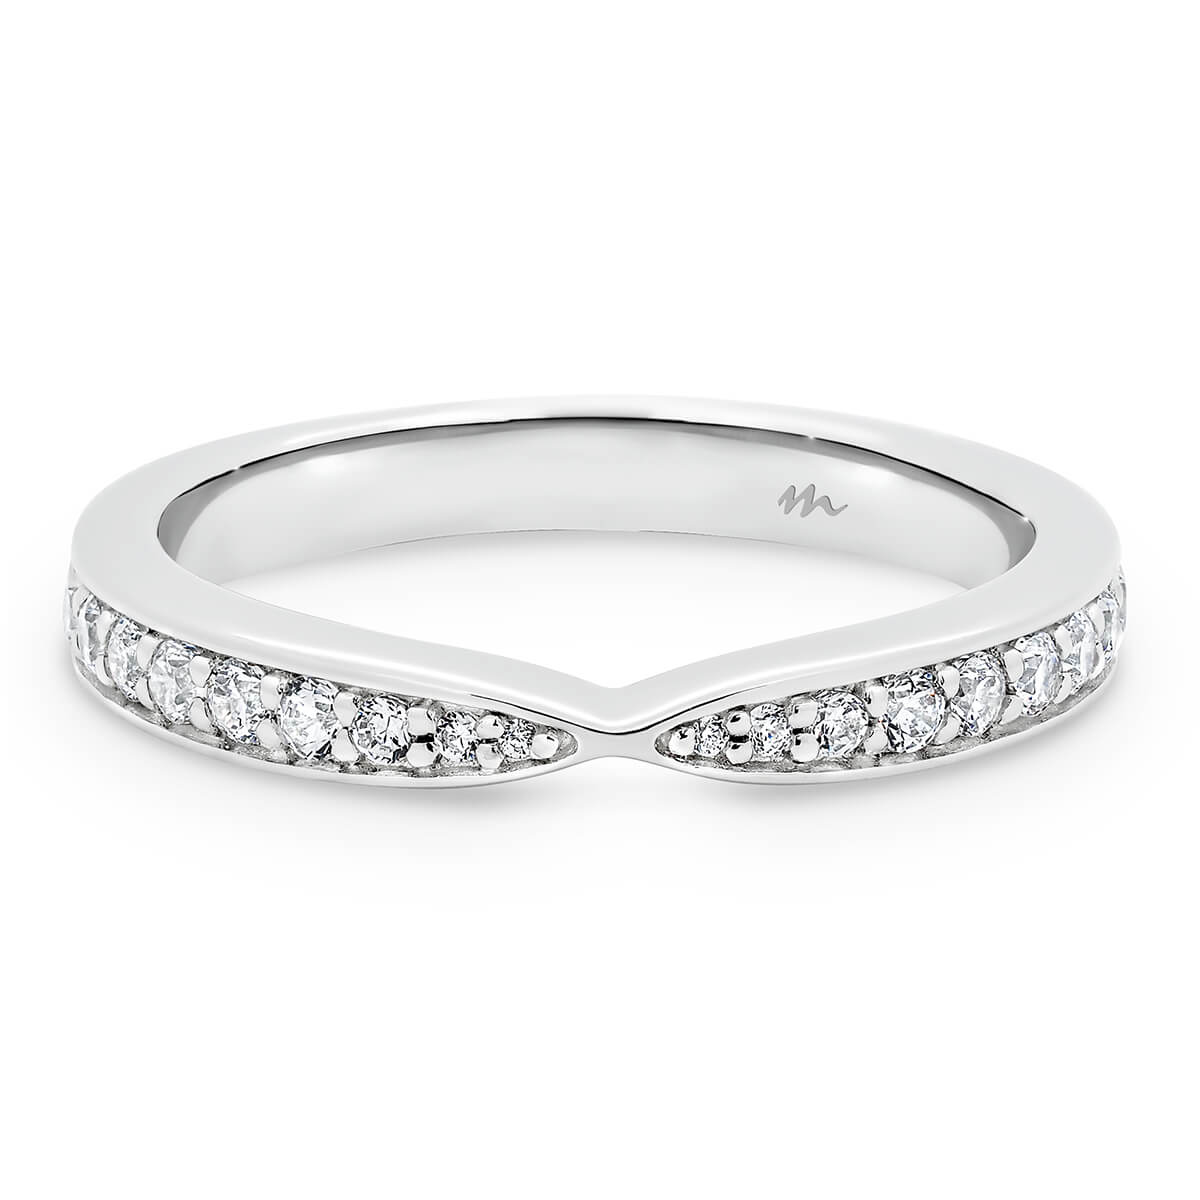 Marie pave set band with tapered centre